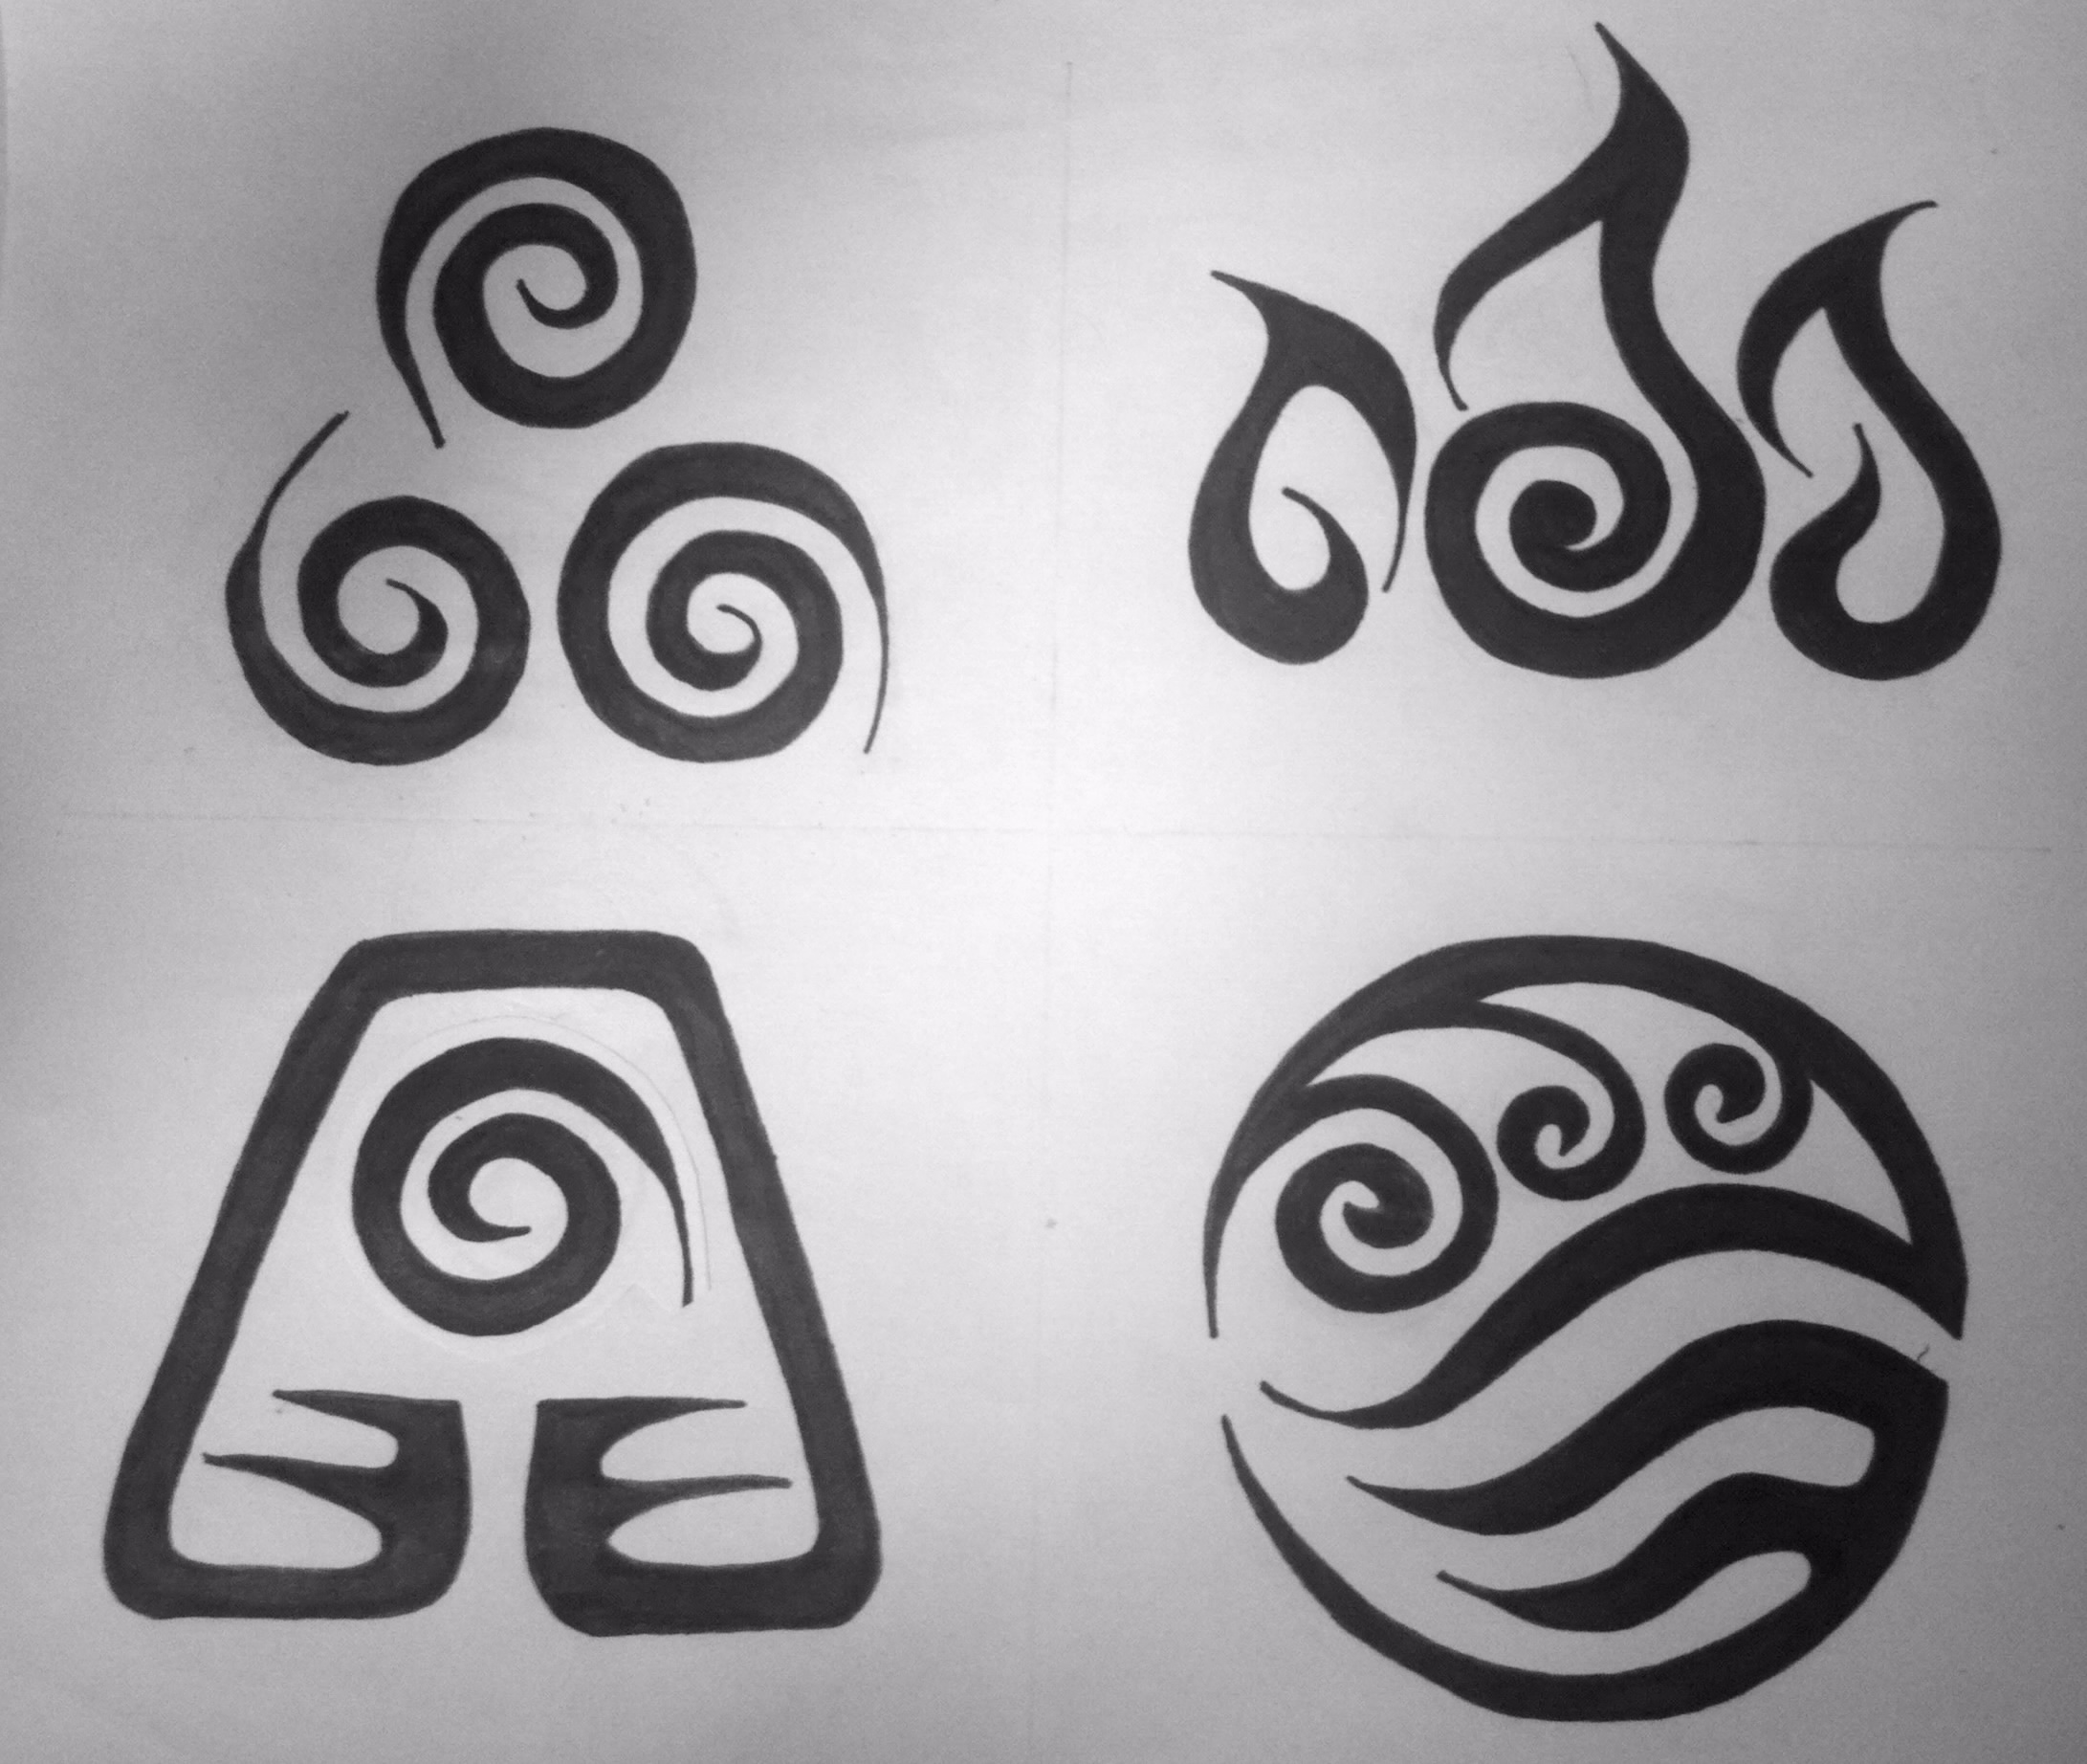 Four Elements Symbol Tattoos